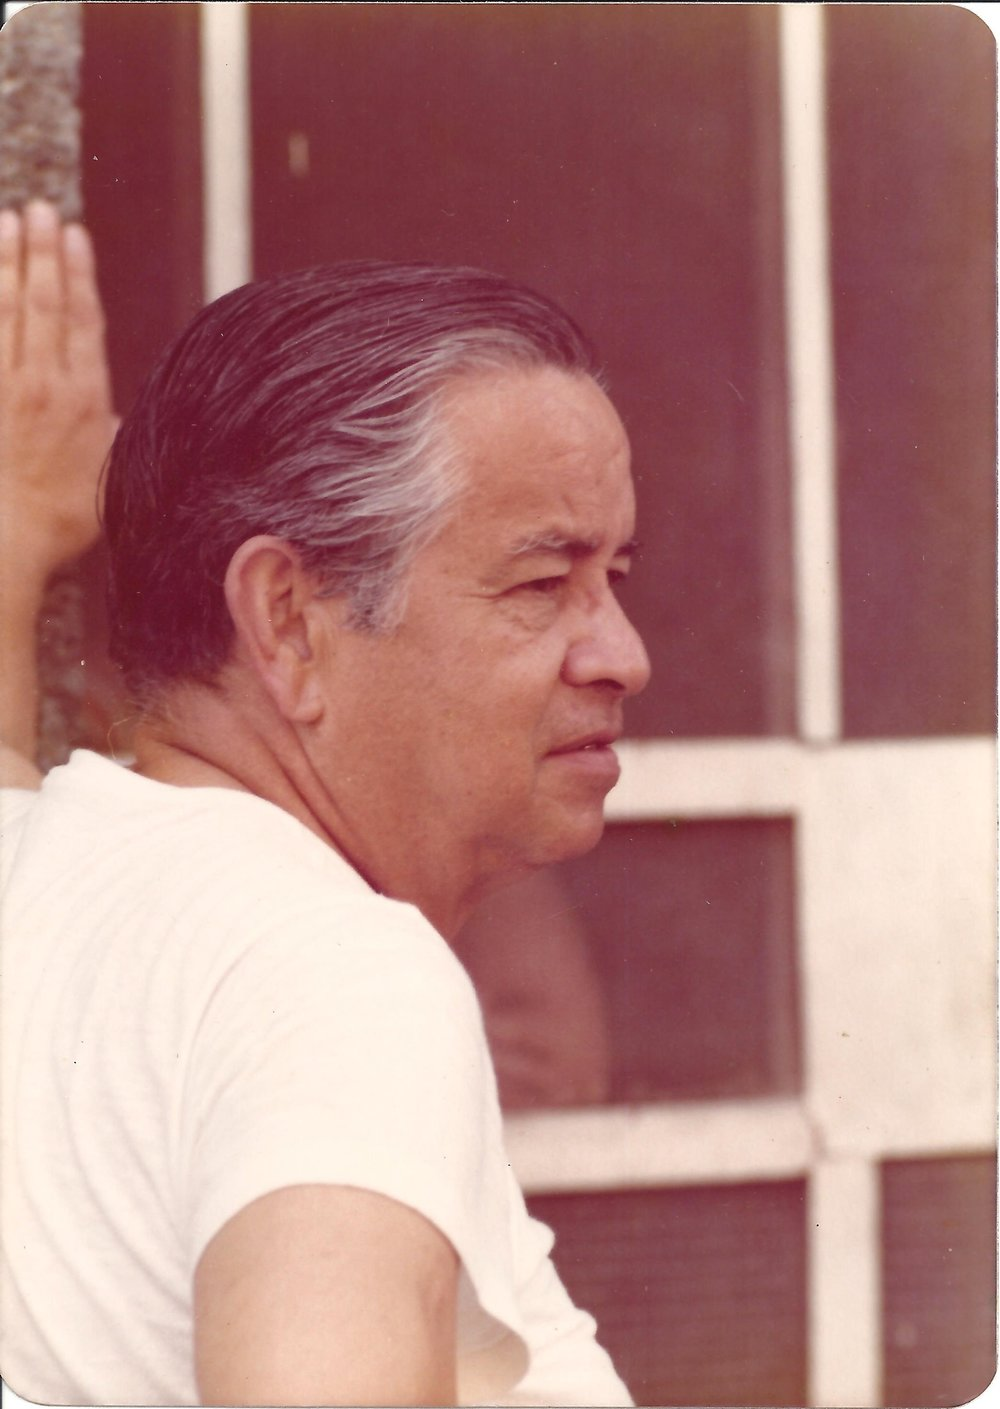 Dr. Ramon Pellicer of Baguio City, Philippines. Father of six boys. Strapping gentleman till the very end. Happy Father's Day in Memory of you Grandpa.